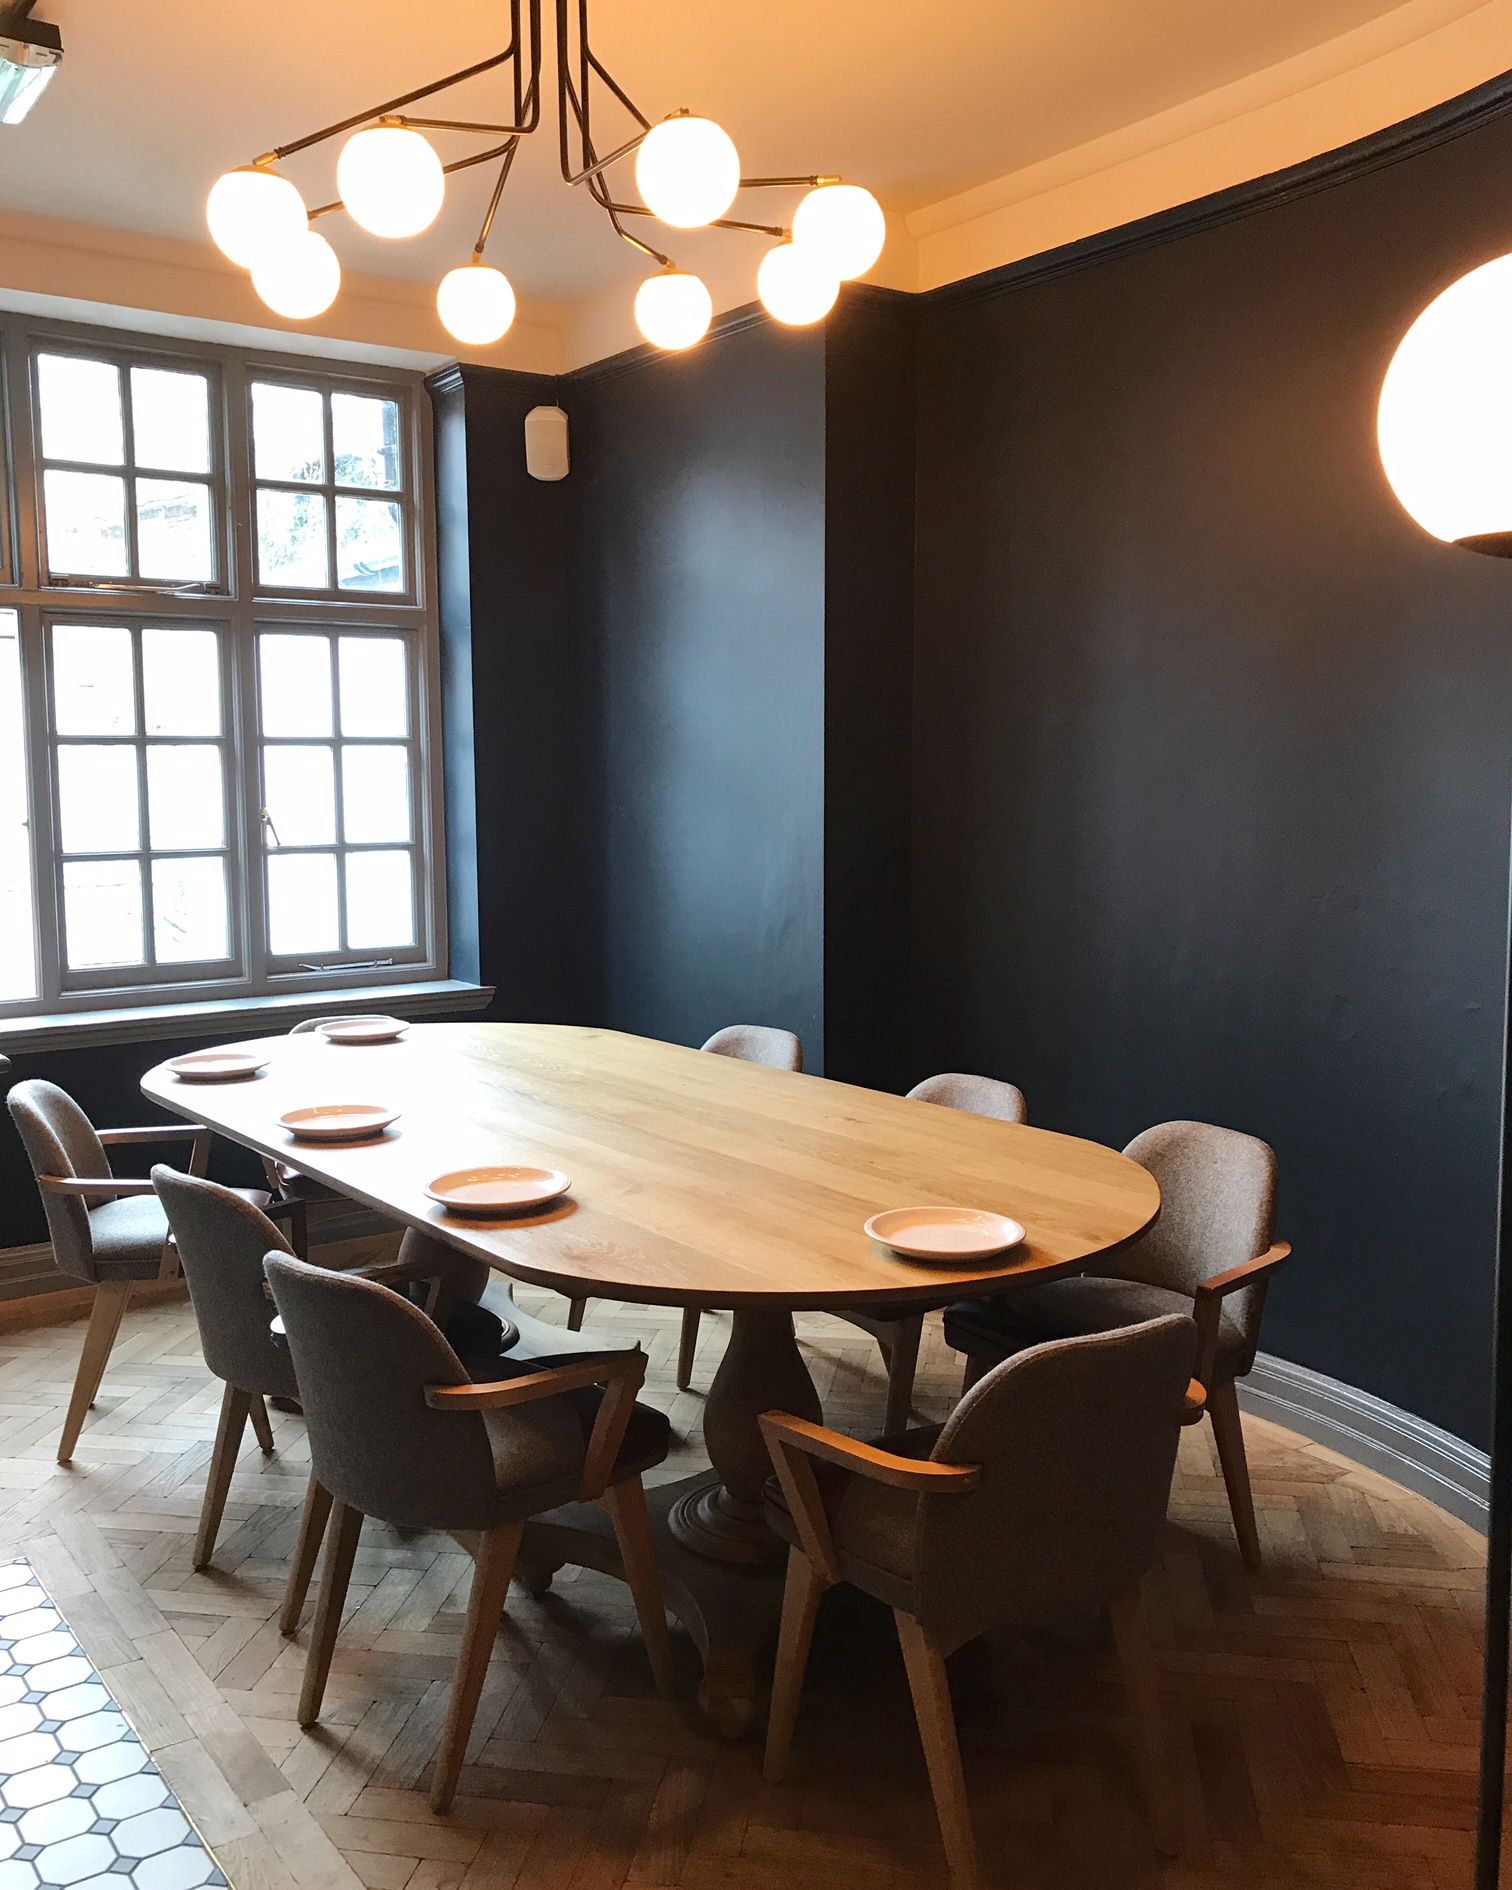 It Was Also An Opportunity To Check Out Pint Shopu0027s Revamp, Namely Its Two  New Private Dining Rooms On The First Floor And The Covered, Heated  Courtyard ...